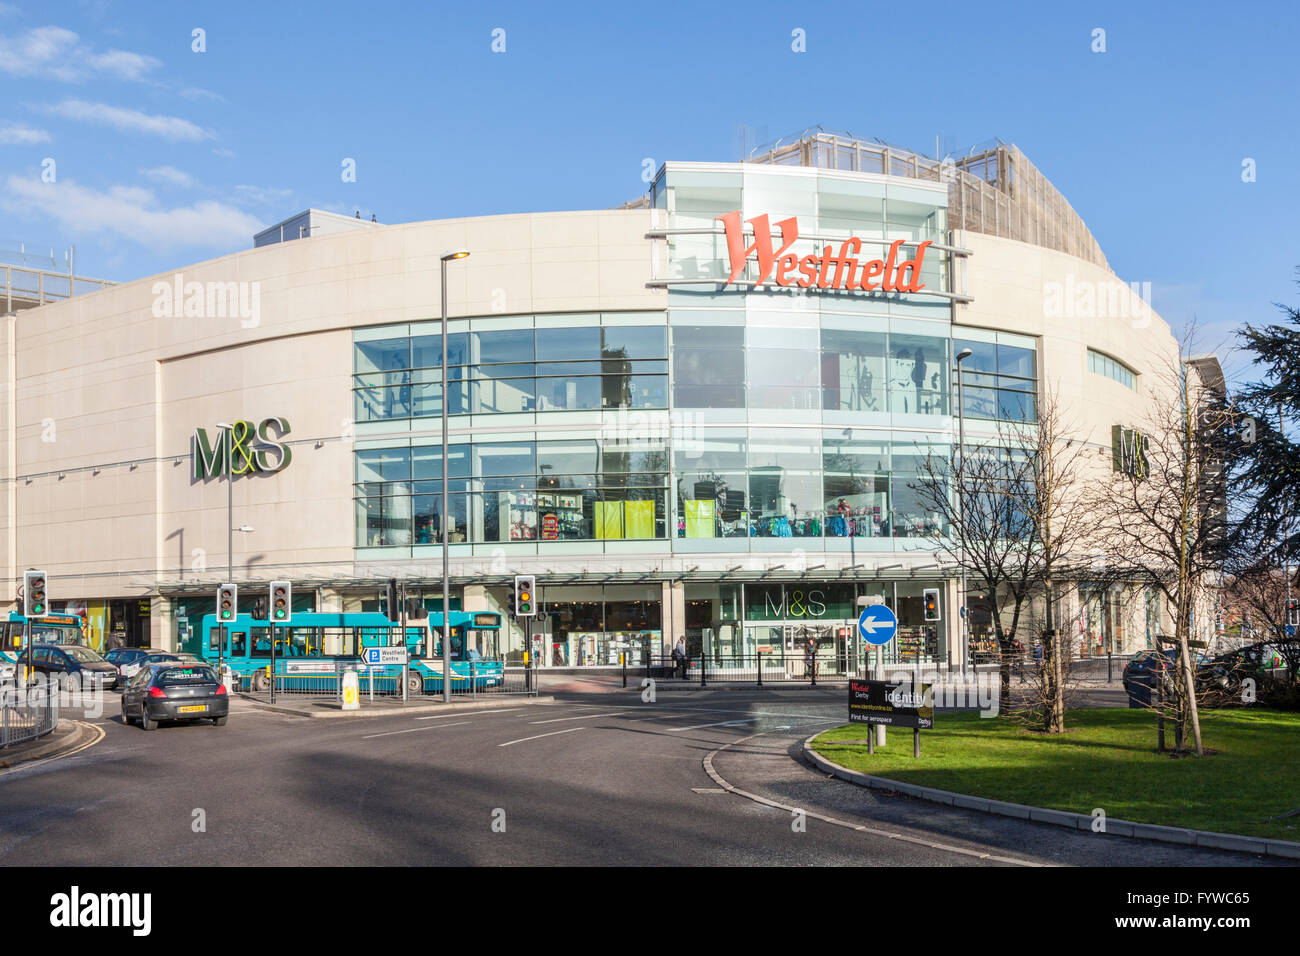 The Westfield shopping centre in Derby city centre, England, UK - Stock Image